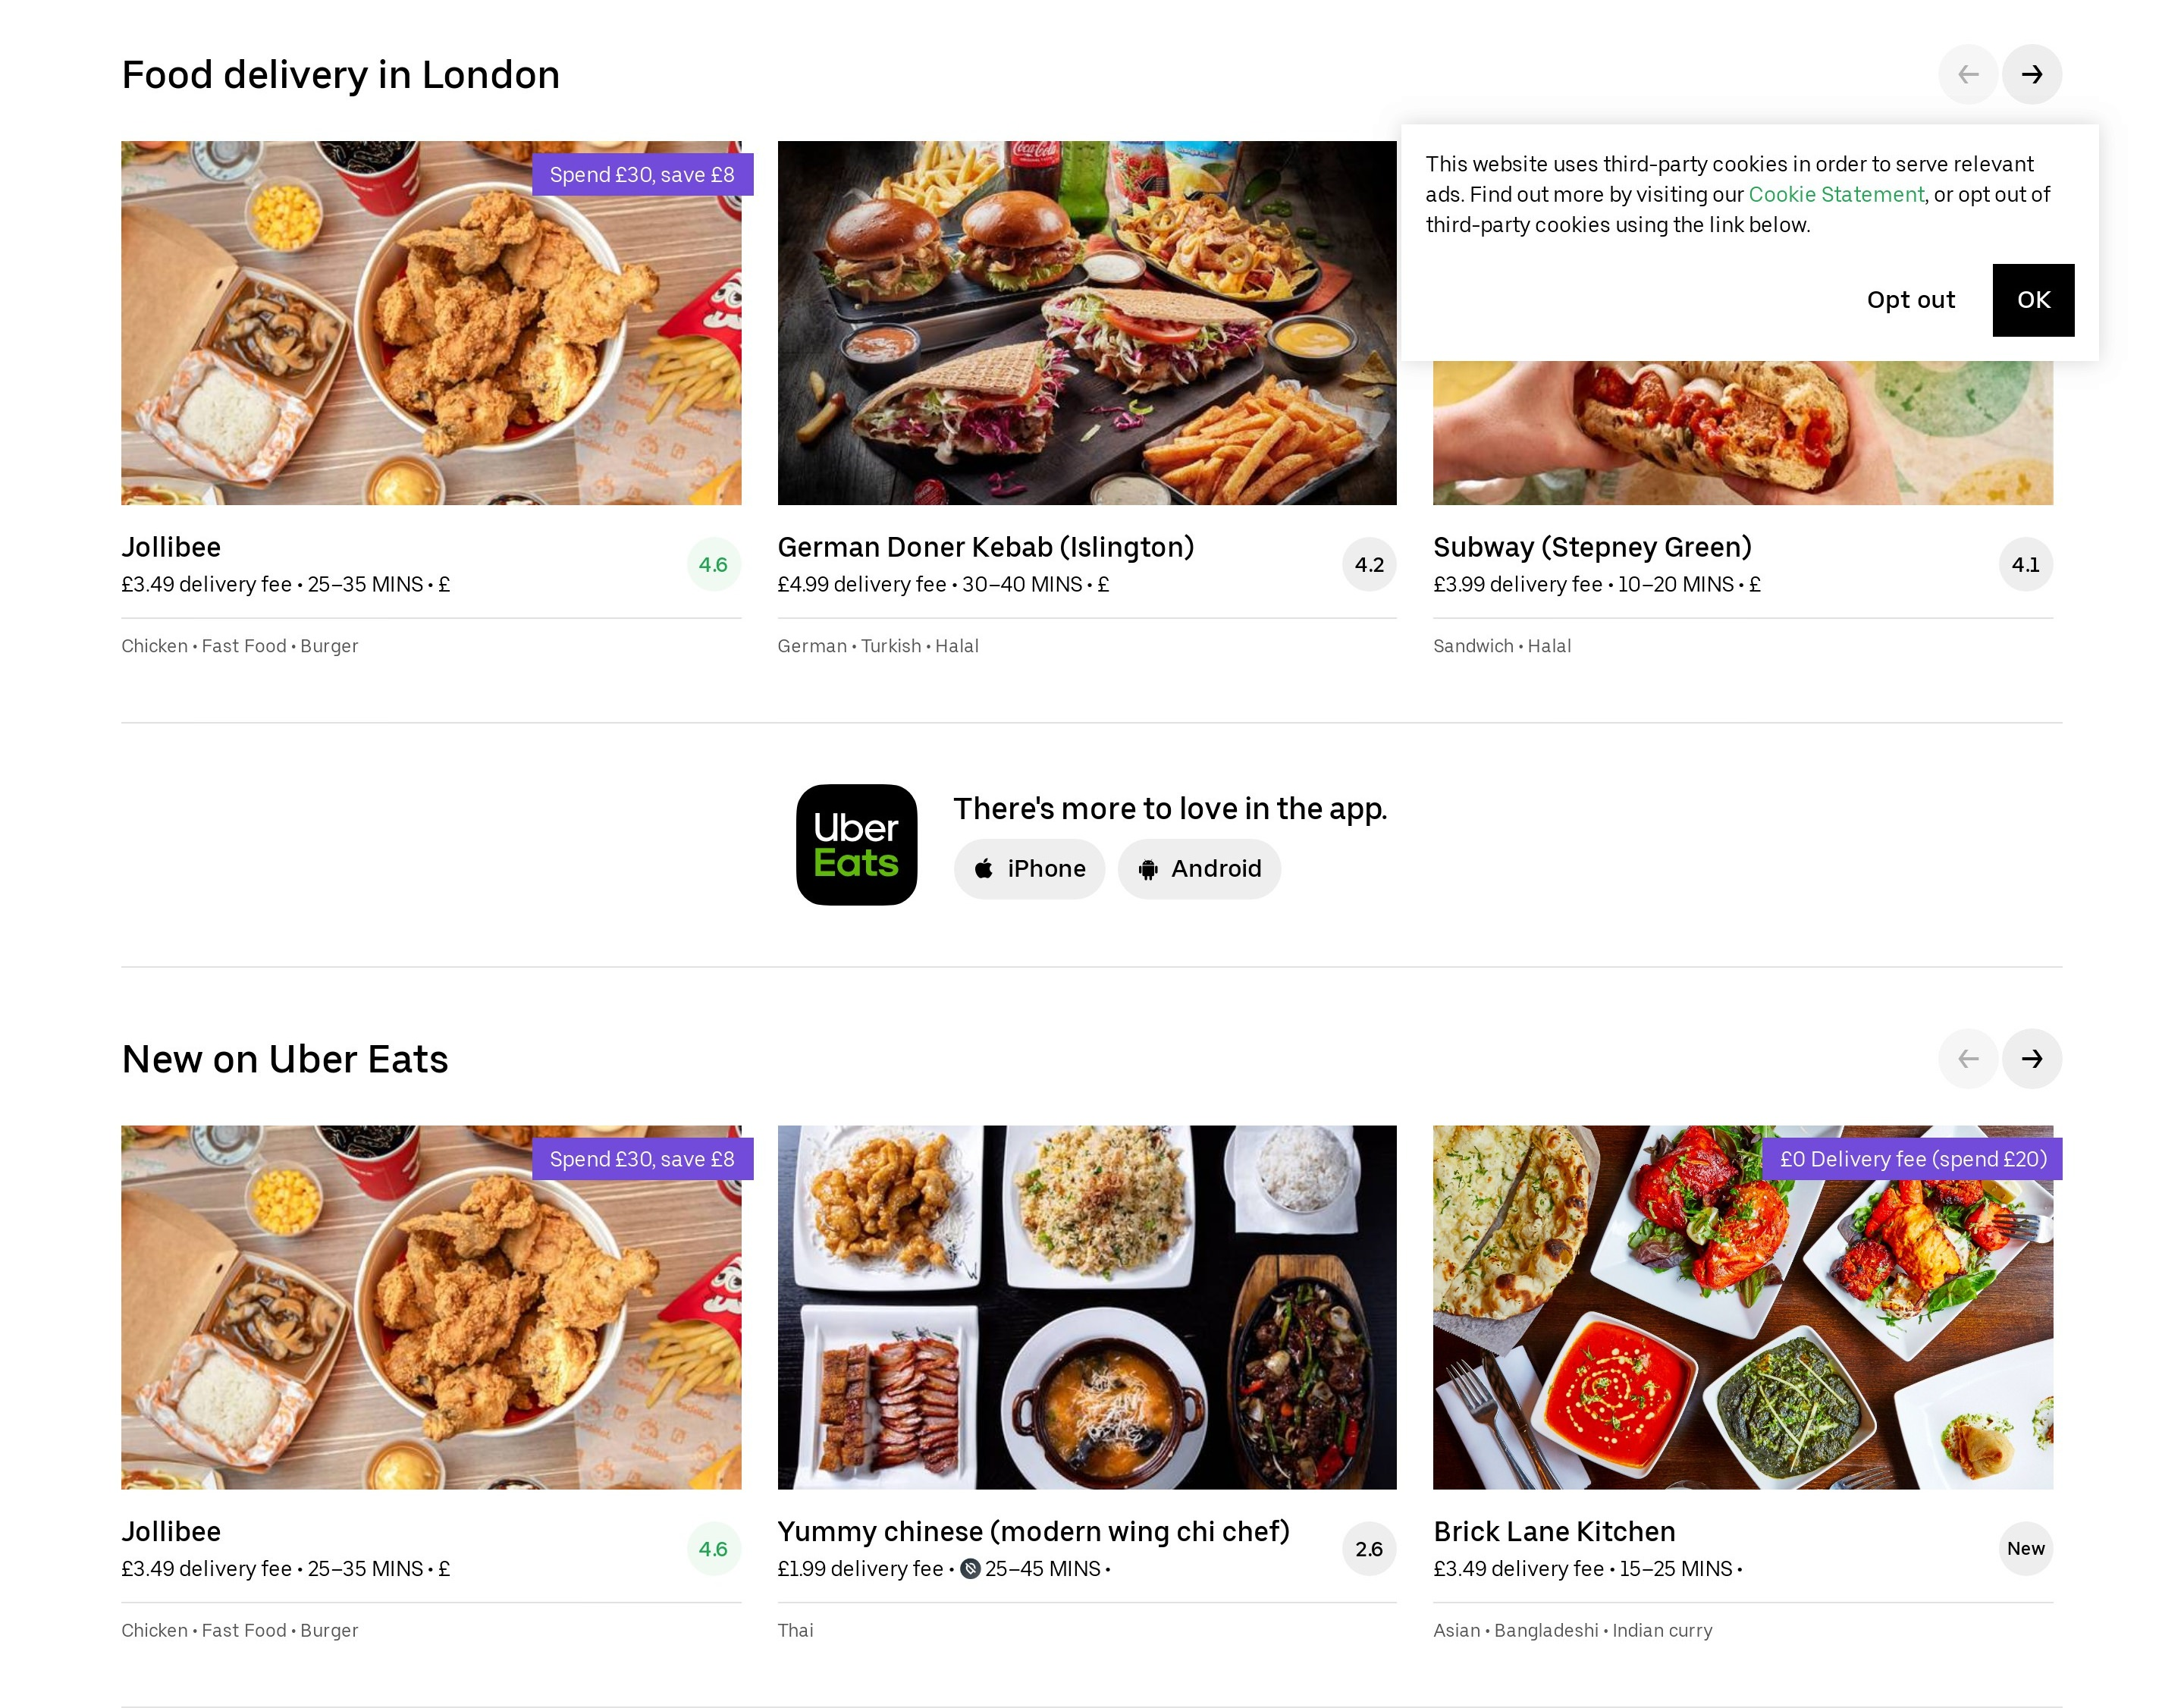 List of Restaurants with Rating & App Download Buttons